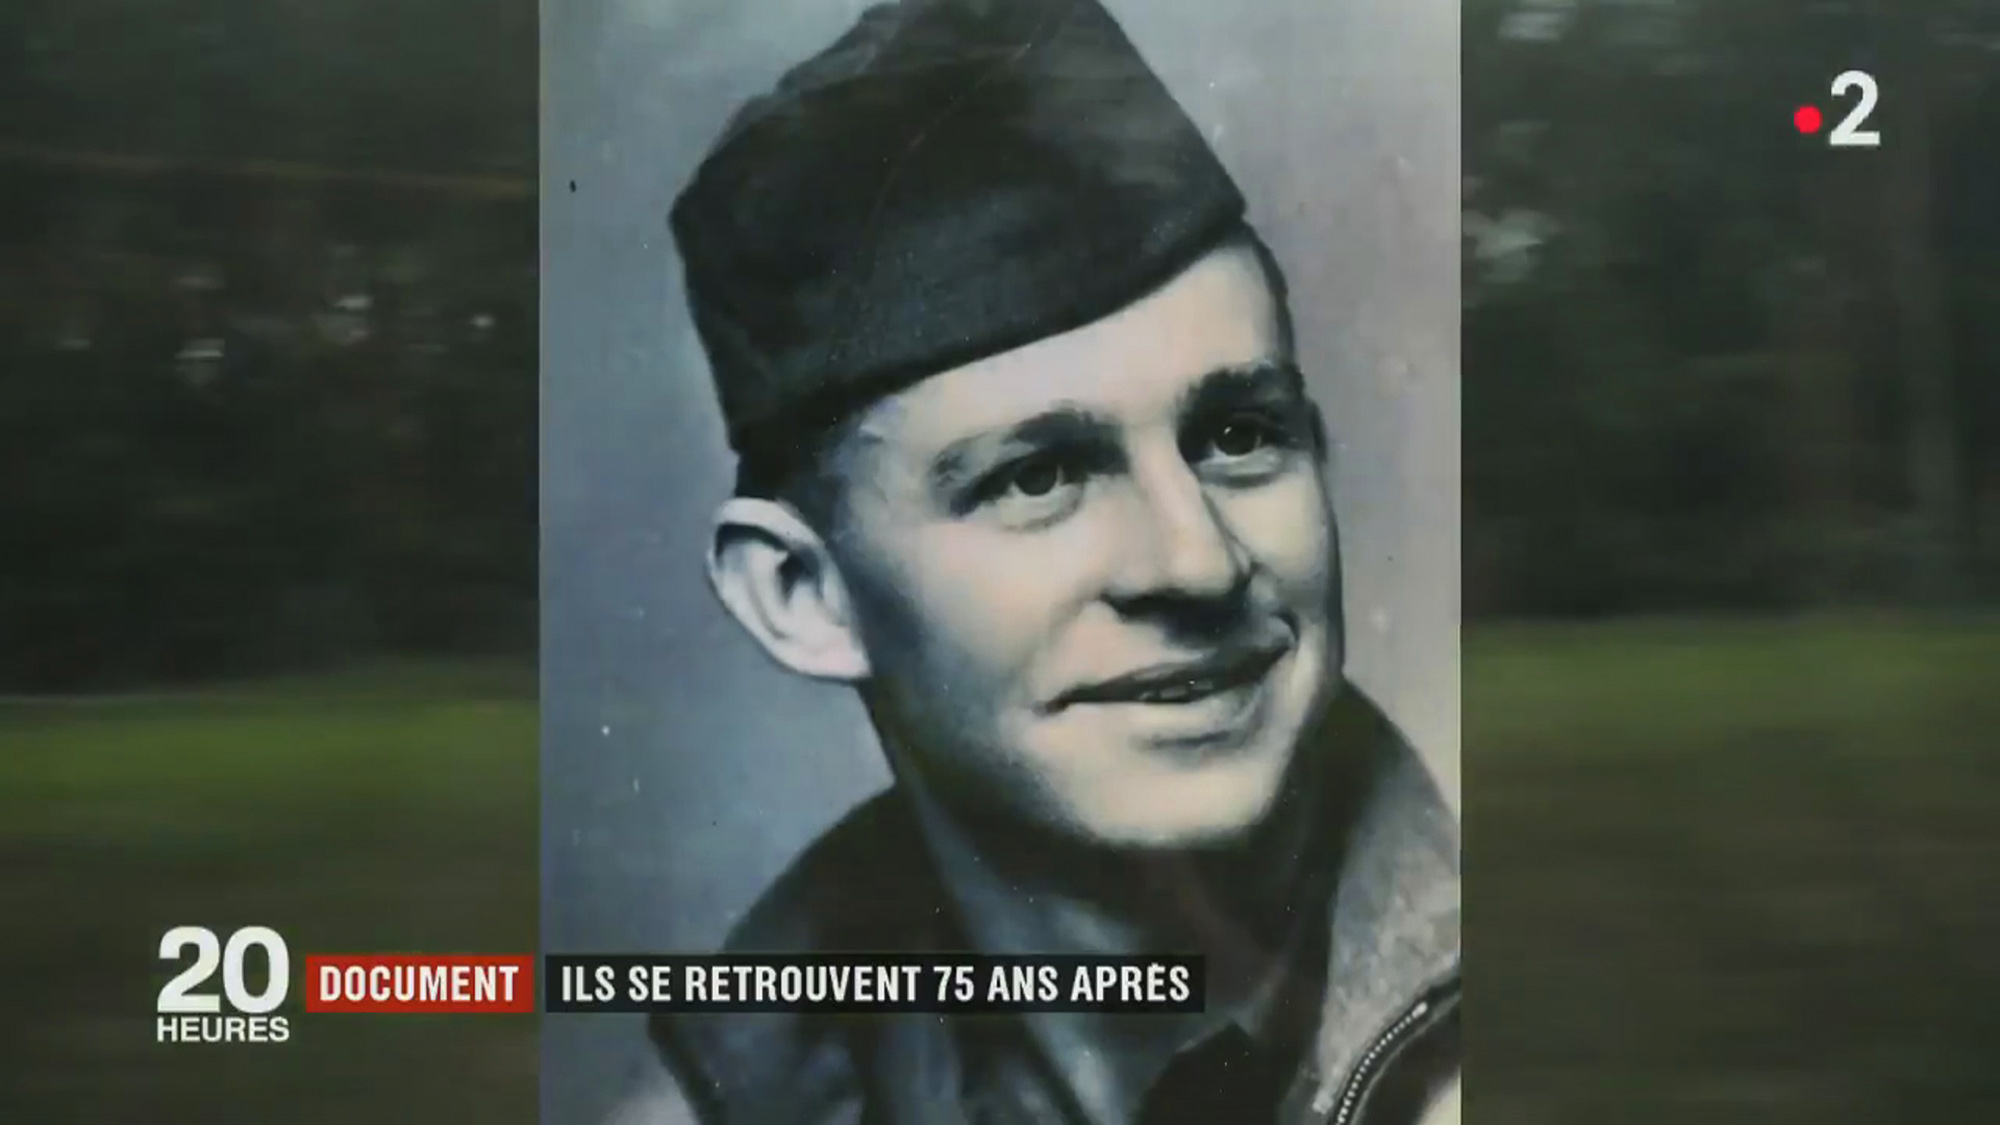 K.T. was only 24 when he left for the eastern front. Credit: 20 heures le journal/France 2